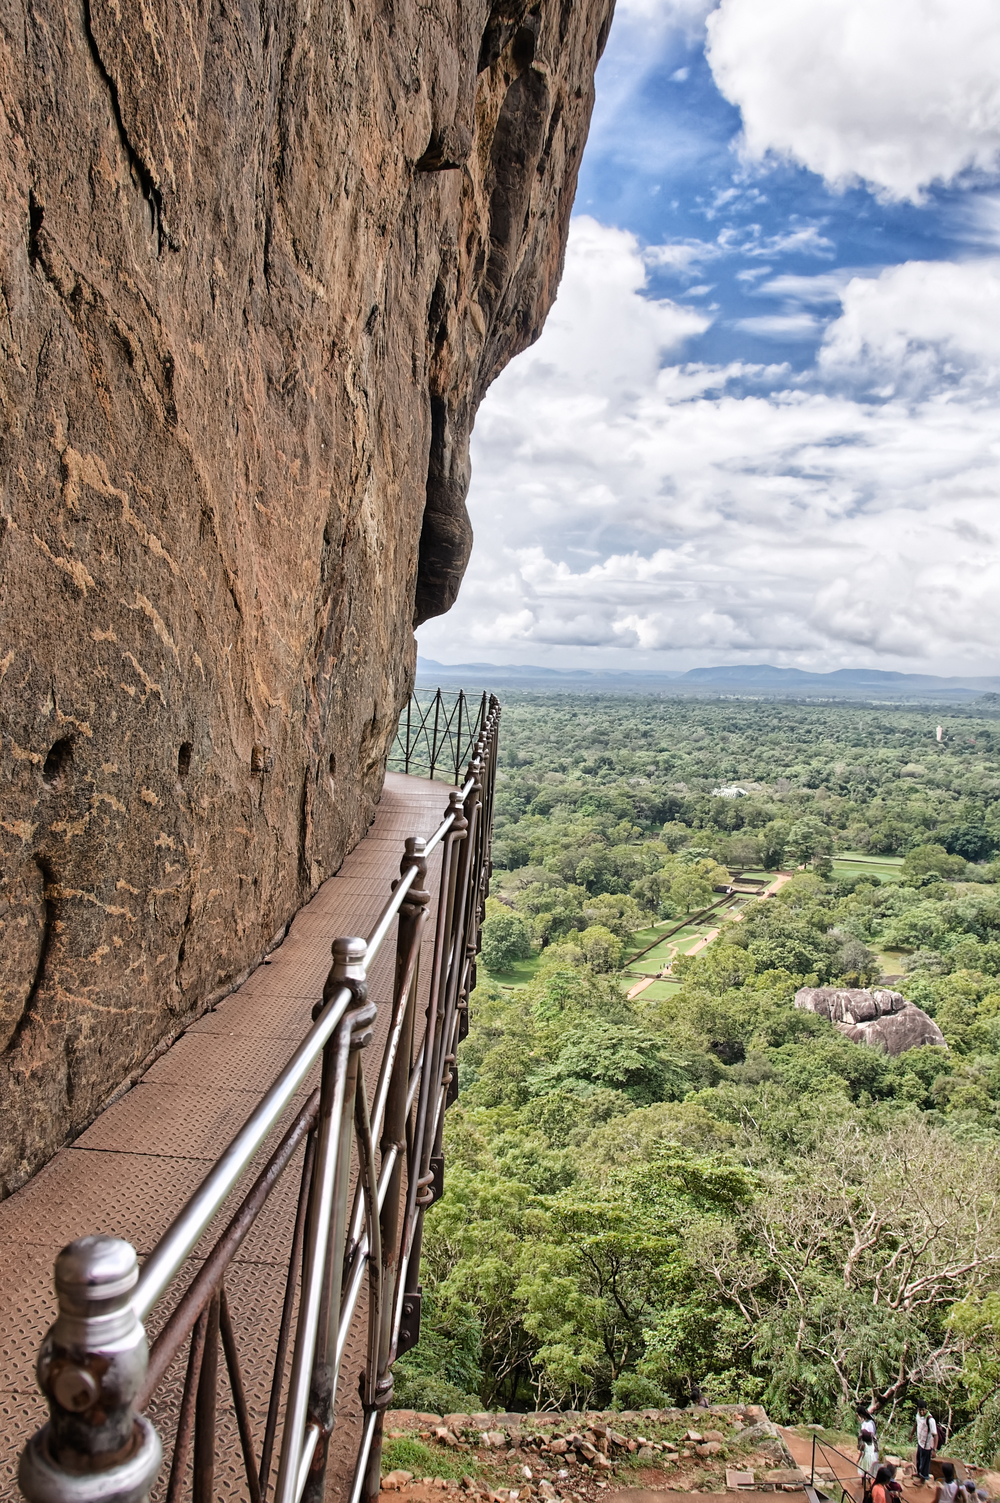 invite-to-paradise-sri-lanka-holiday-honeymoon-sigiriya-rock-fortress-walkways-2.jpg